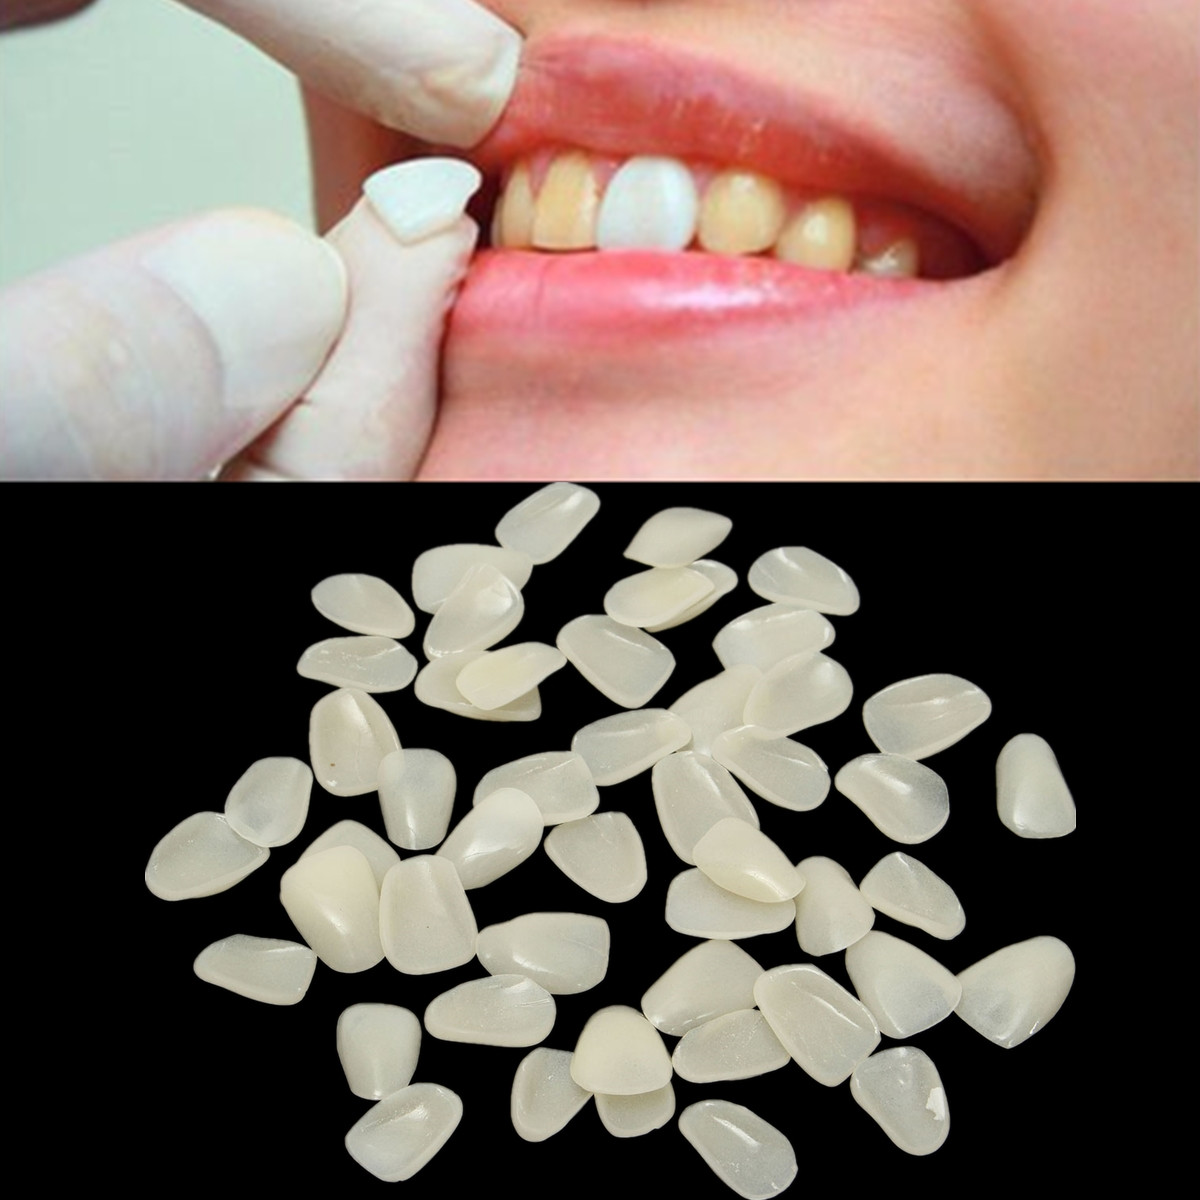 3x50pcs Dental Ultra Thin Whitening Porcelain Teeth Medical Veneers Resin Teeth Anterior Temporary Crown For Dental Care